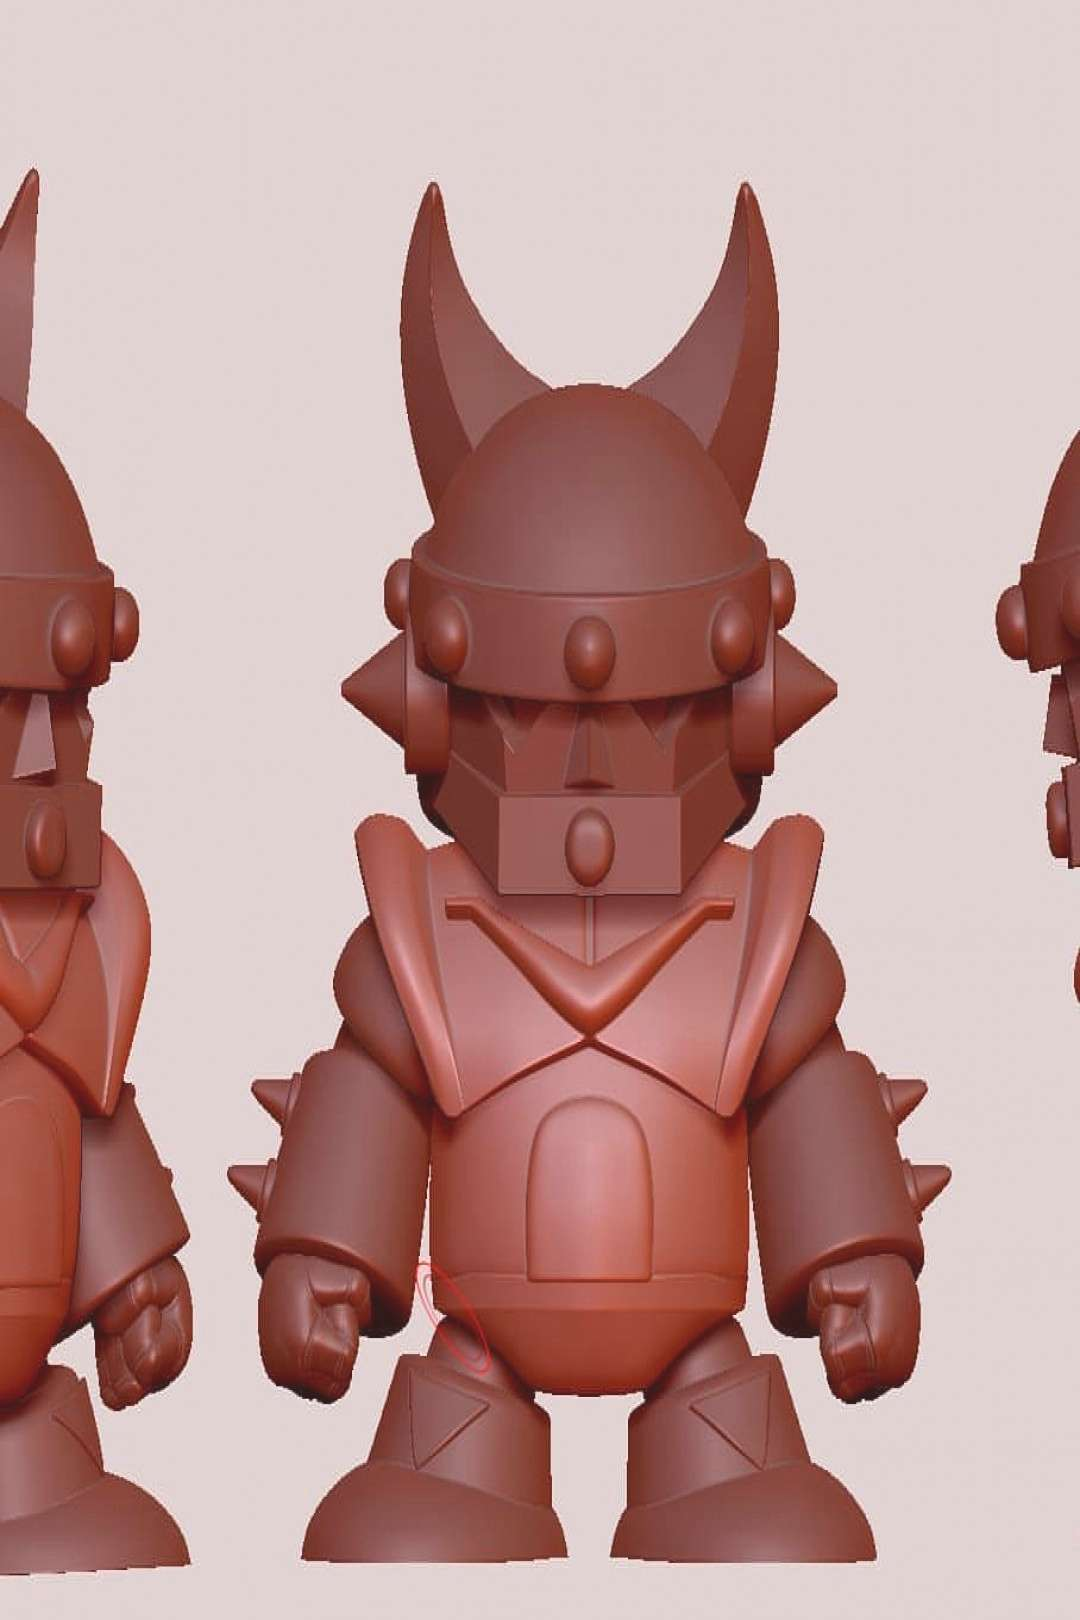 #3d #arttoy #3dprinting #modeling #3dmodeling #zbrush #toy #figur